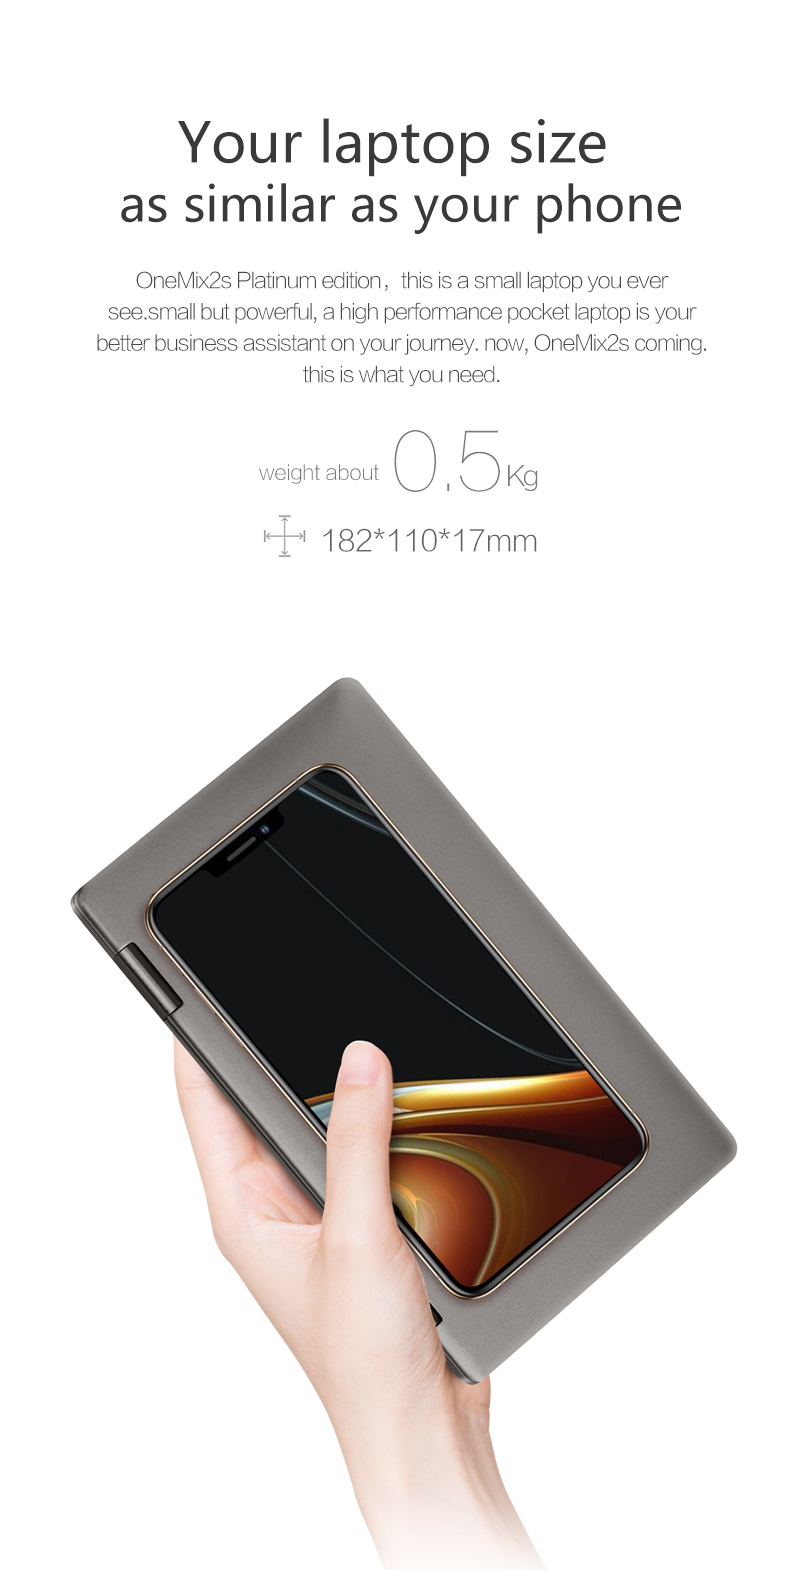 """ONE-NETBOOK One Mix 2s Platinum Edition i7-8500Y 4.2GHz 8GB RAM 512GB PCI-E SSD 7"""" Windows 10 Tablet"""